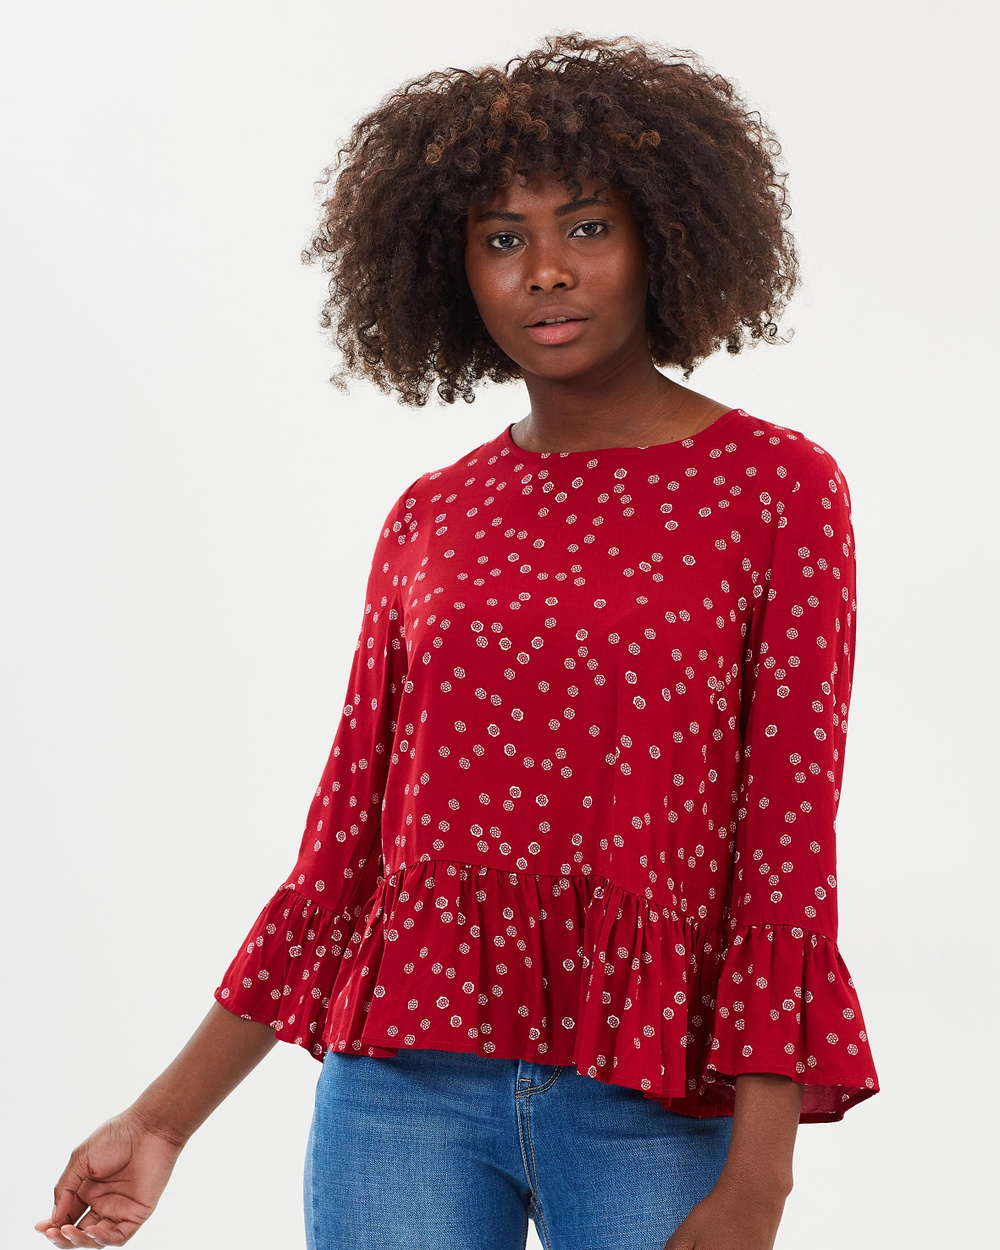 Atmos & Here ICONIC EXCLUSIVE Layla Frilled Hem Top Tops Red Scatter Print ICONIC EXCLUSIVE Layla Frilled Hem Top